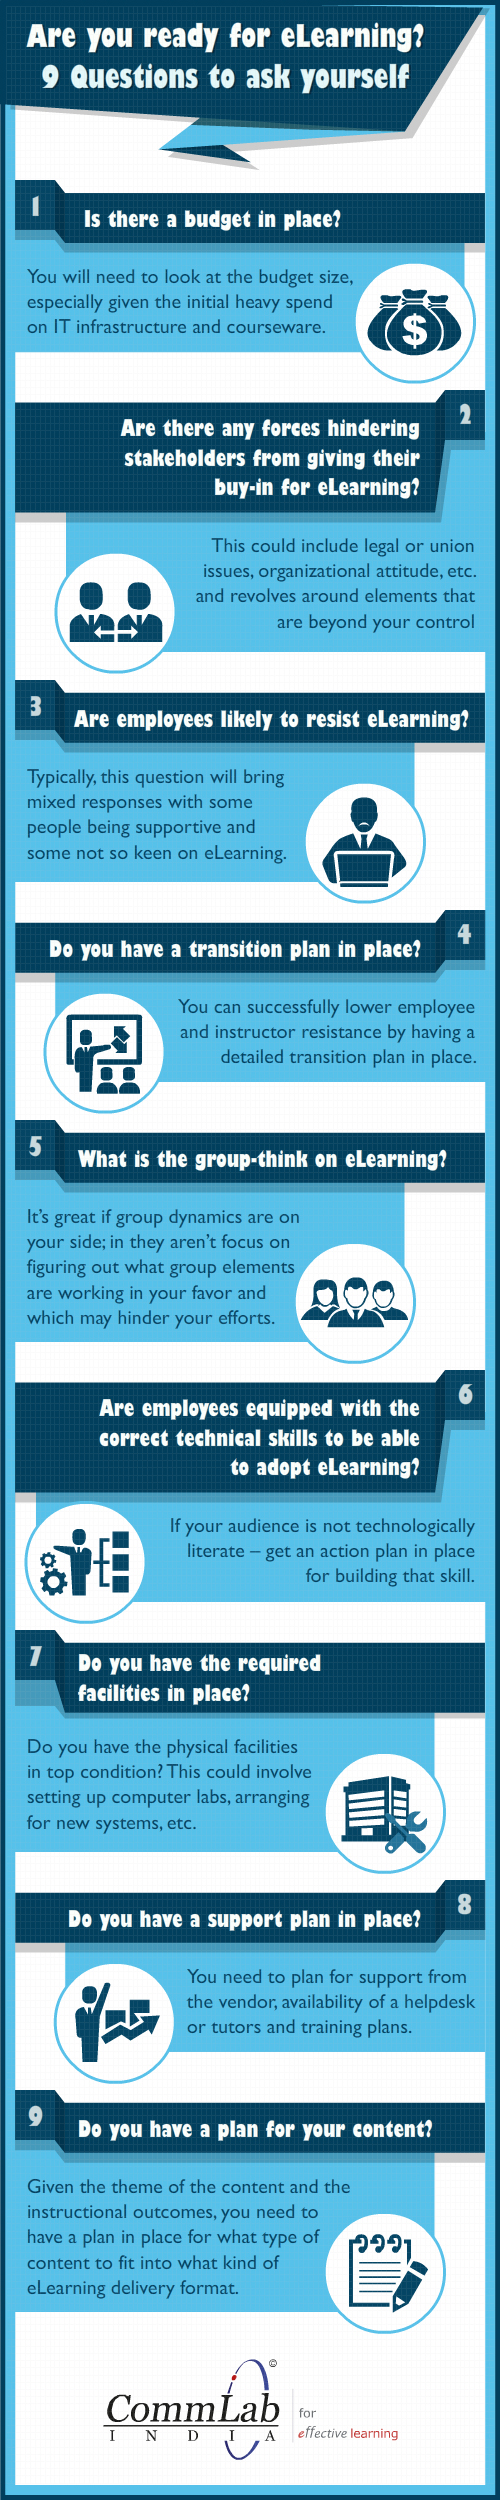 Are you Ready for E-learning? - 9 Questions to Ask Yourself